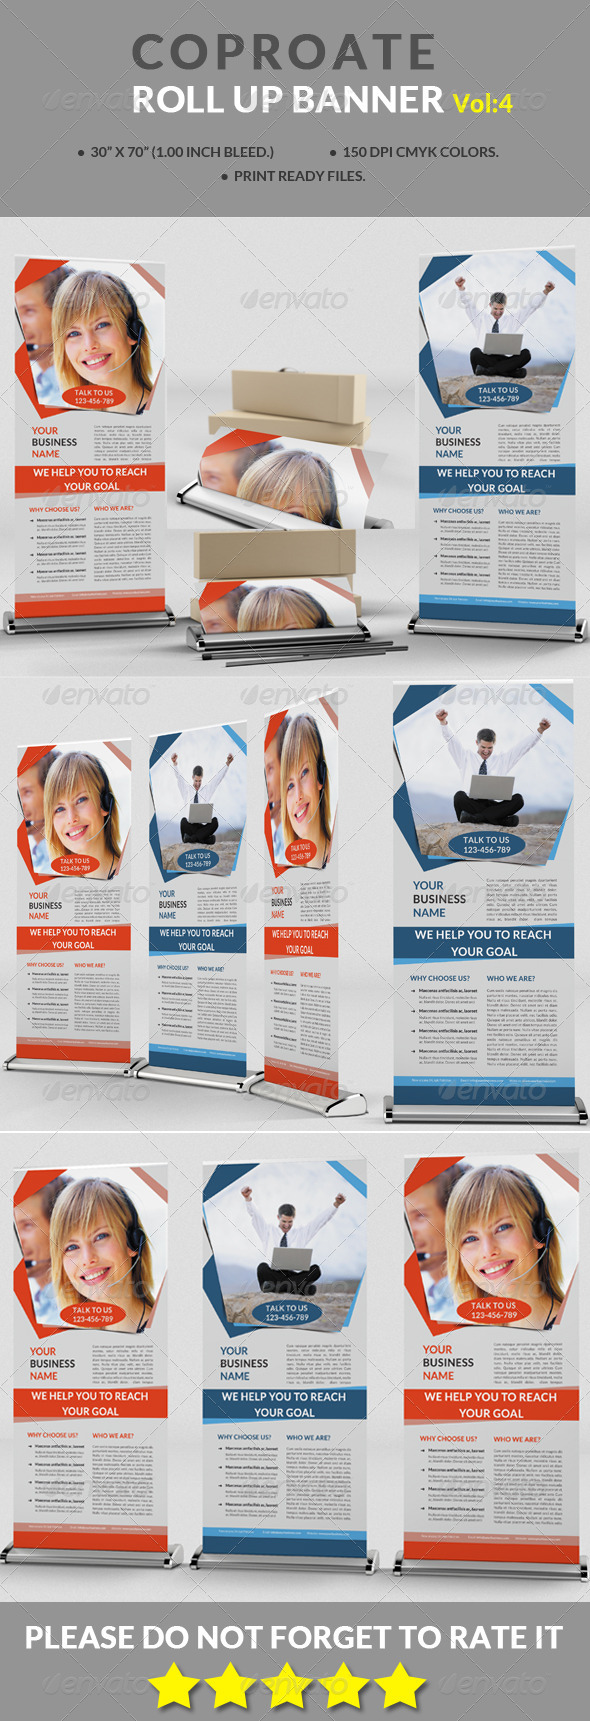 GraphicRiver Corporate Roll-up Banner Vol 4 8765355